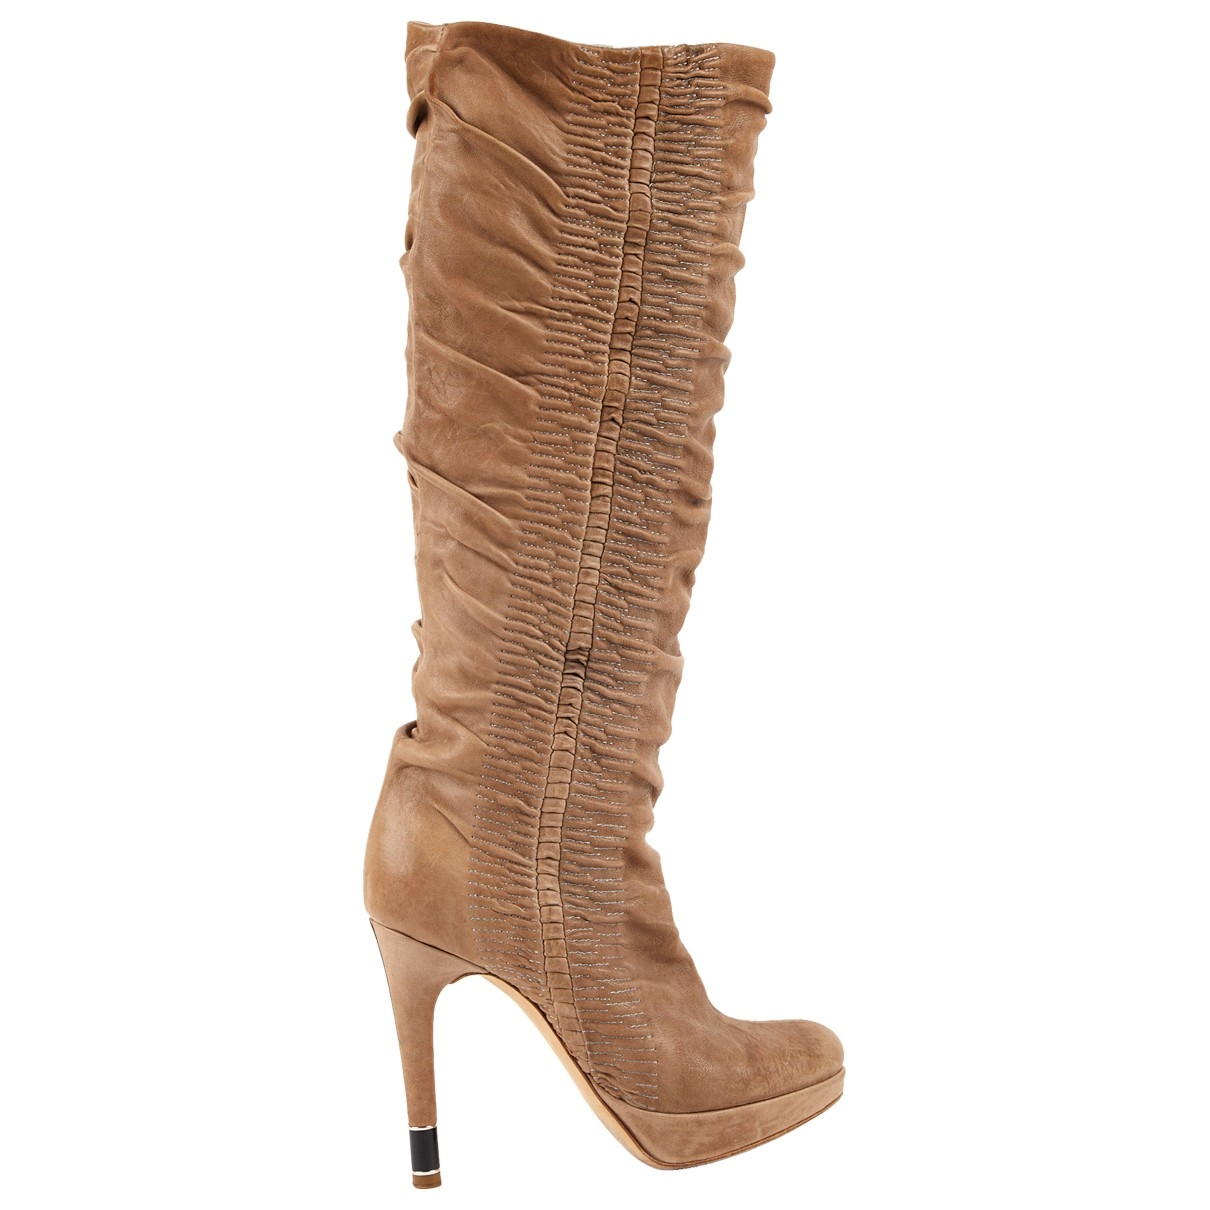 Dior \N Beige Leather Boots for Women 35 EU